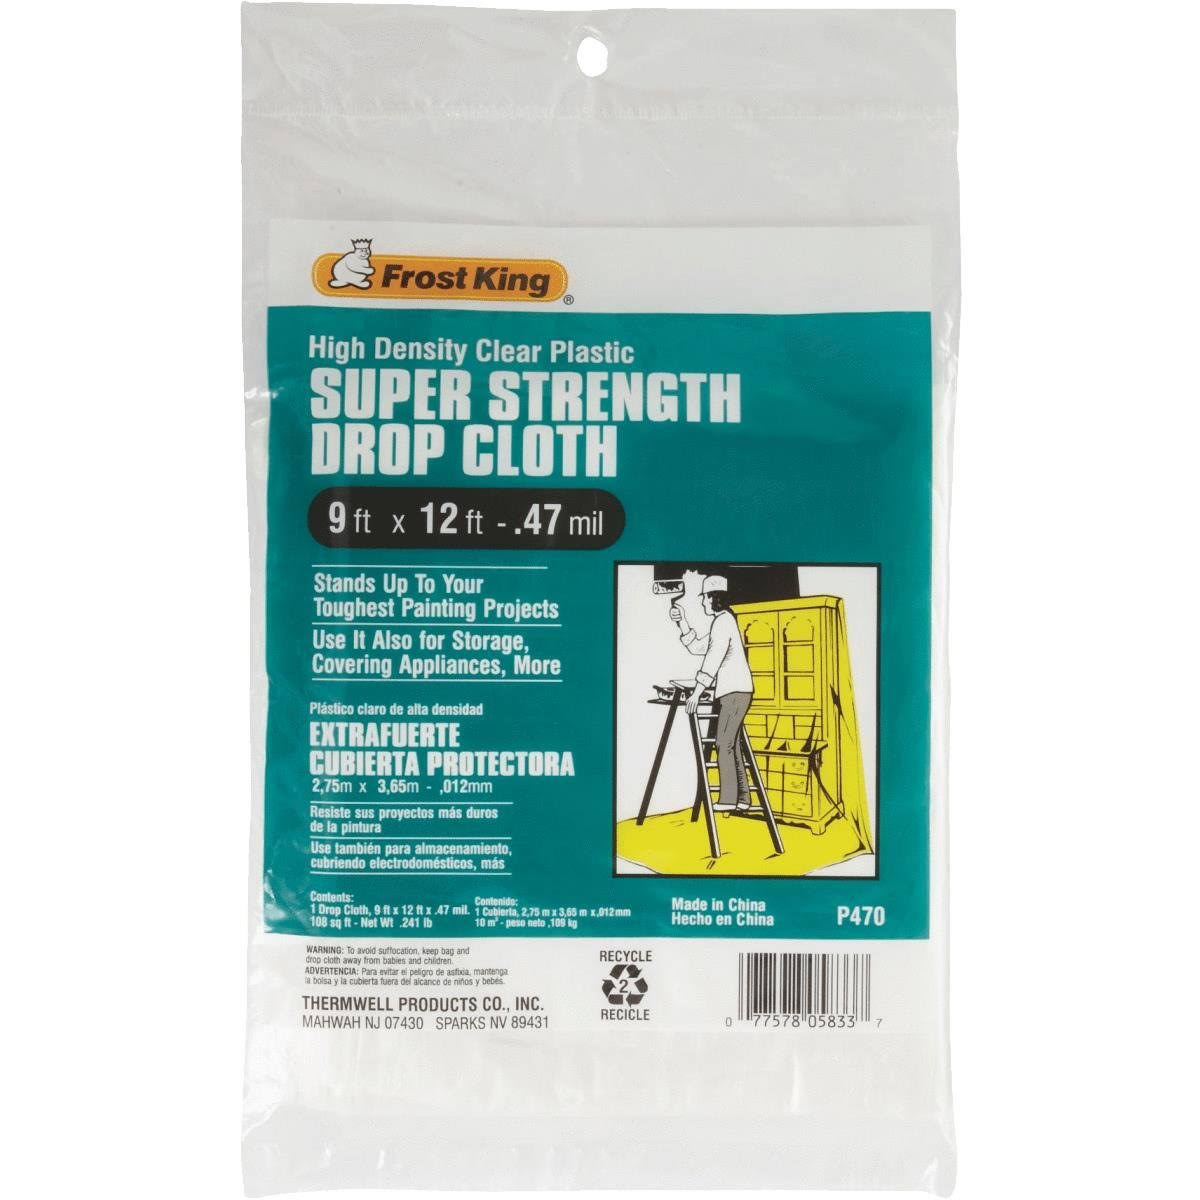 Frost King Super Strength Drop Cloth